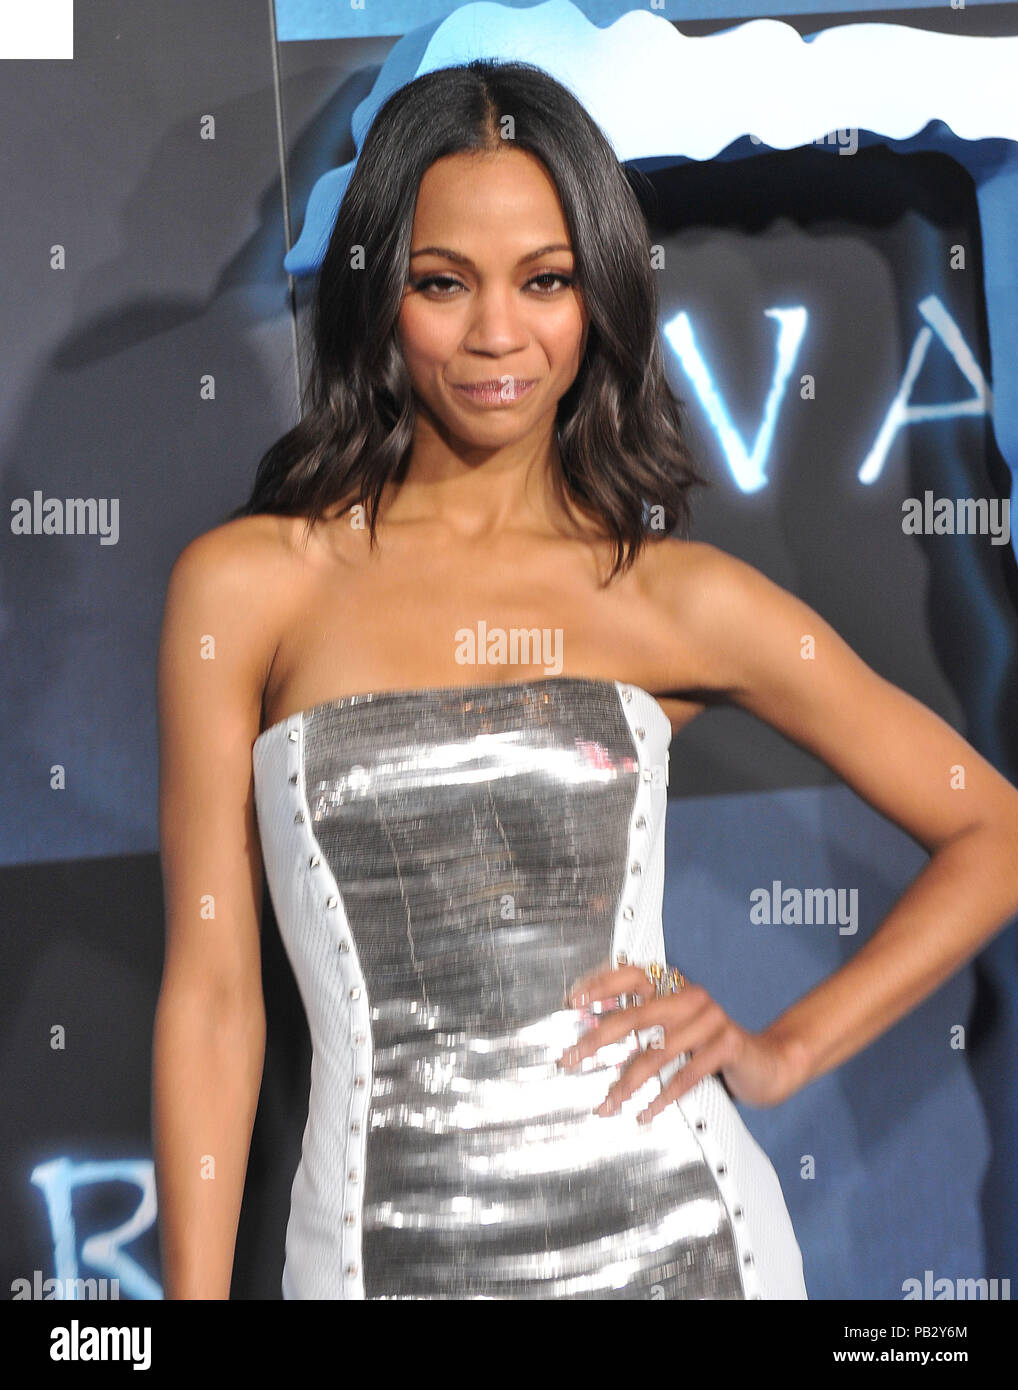 Zoe Saldana _30  - Avatar Los Angeles Premiere at the Chinese Theatre In Los Angeles.Zoe Saldana _30 Red Carpet Event, Vertical, USA, Film Industry, Celebrities,  Photography, Bestof, Arts Culture and Entertainment, Topix Celebrities fashion /  Vertical, Best of, Event in Hollywood Life - California,  Red Carpet and backstage, USA, Film Industry, Celebrities,  movie celebrities, TV celebrities, Music celebrities, Photography, Bestof, Arts Culture and Entertainment,  Topix, vertical, one person,, from the years , 2006 to 2009, inquiry tsuni@Gamma-USA.com - Three Quarters - Stock Image